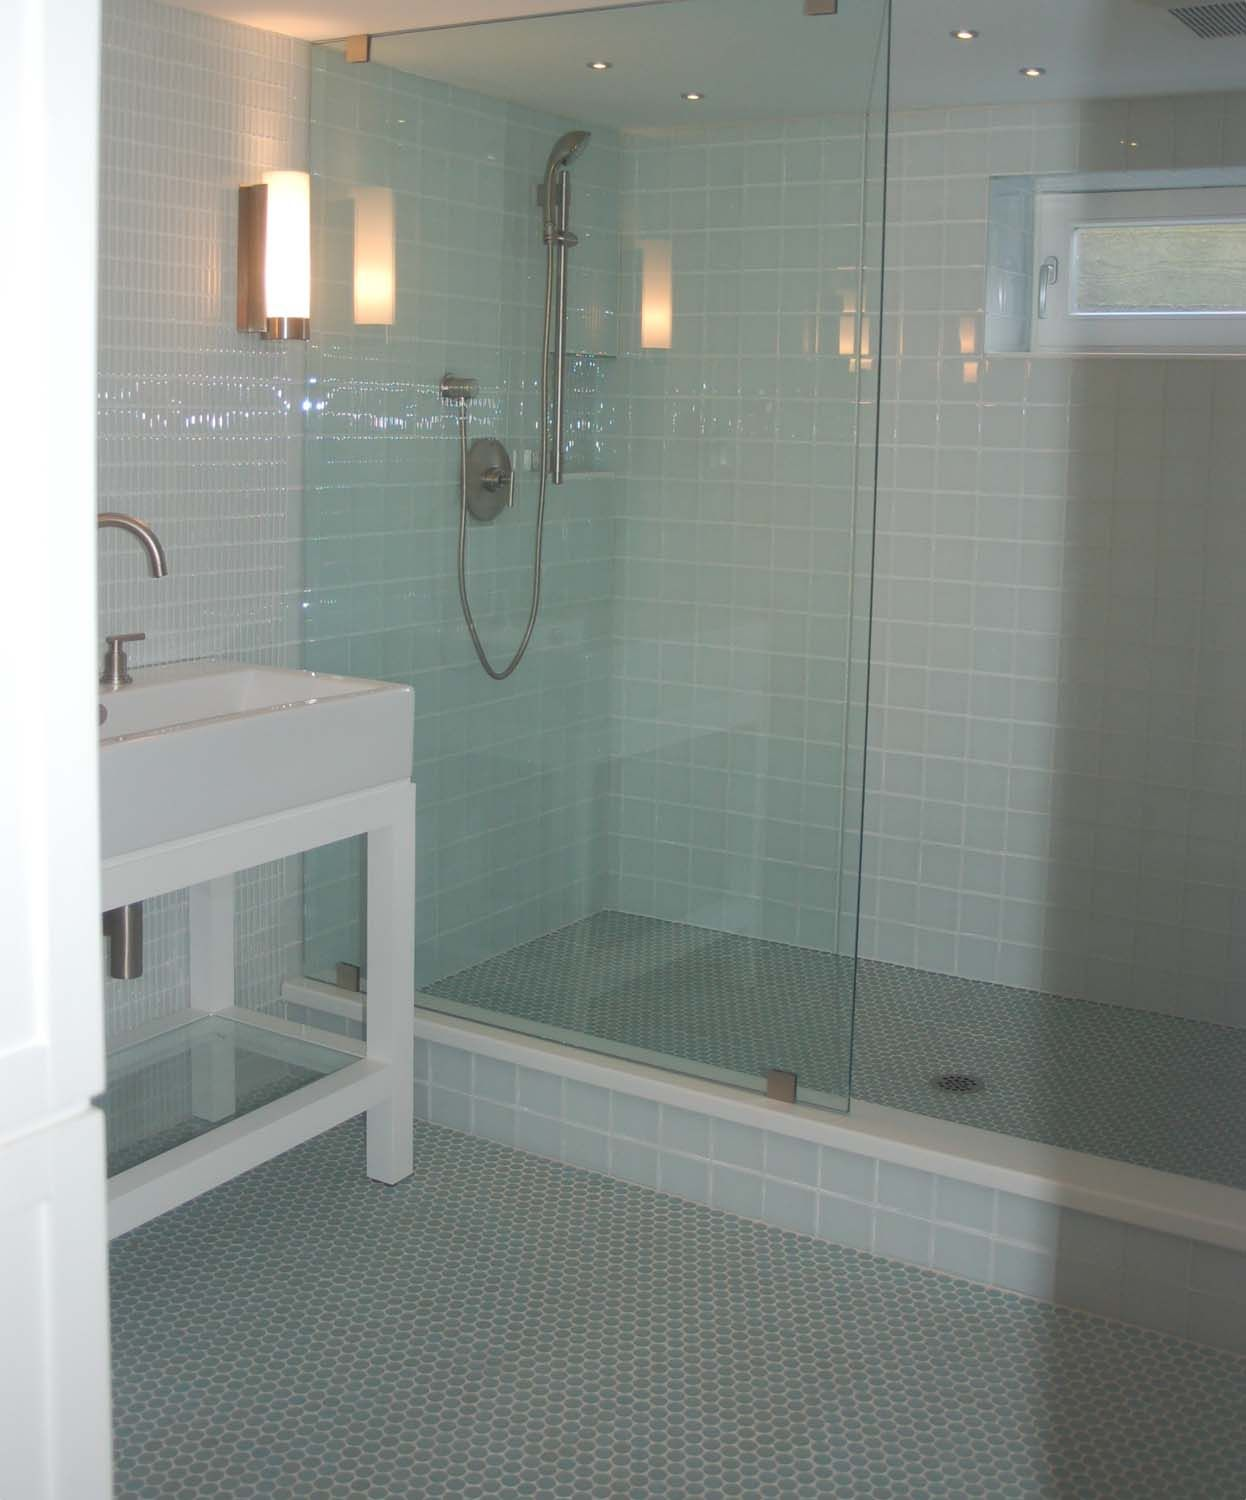 Bathroom Floor Tile Flooring Can Make Or Break A Room Notes From The